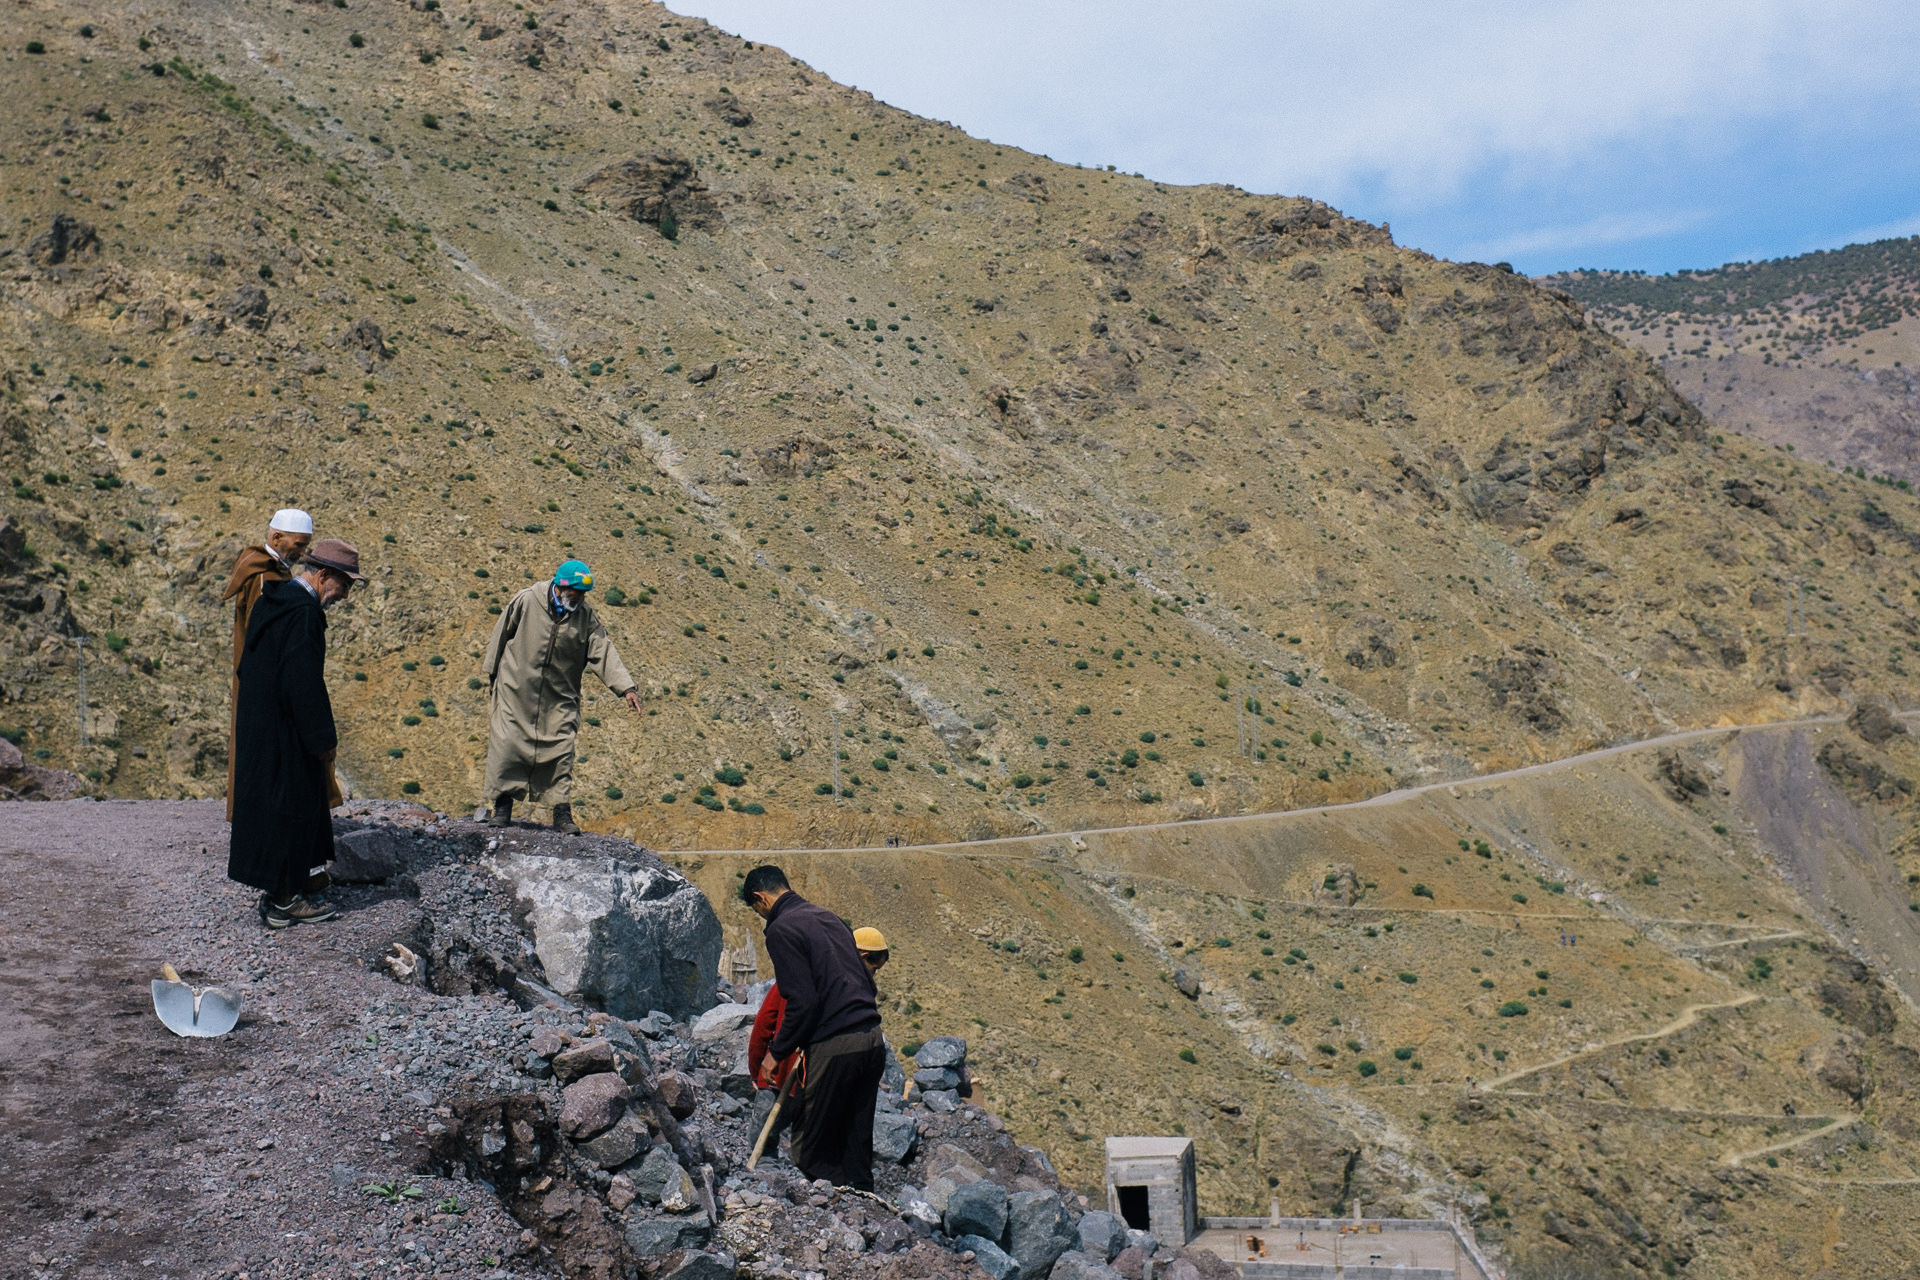 Berbers workers repairing a road high in the Atlas mountains